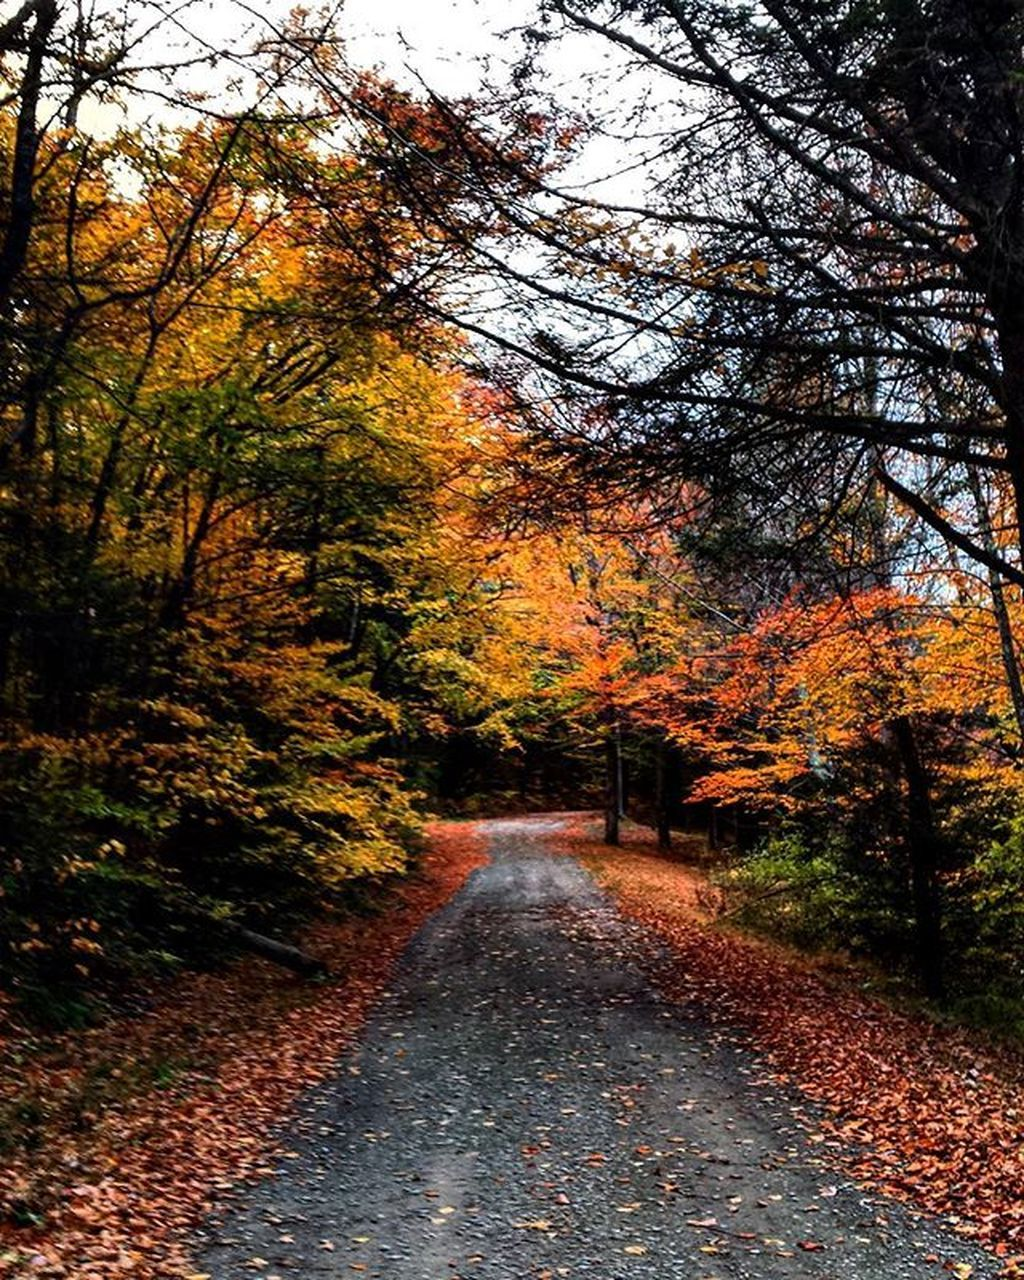 autumn, change, tree, leaf, the way forward, nature, tranquility, scenics, tranquil scene, beauty in nature, orange color, outdoors, no people, day, forest, road, landscape, sky